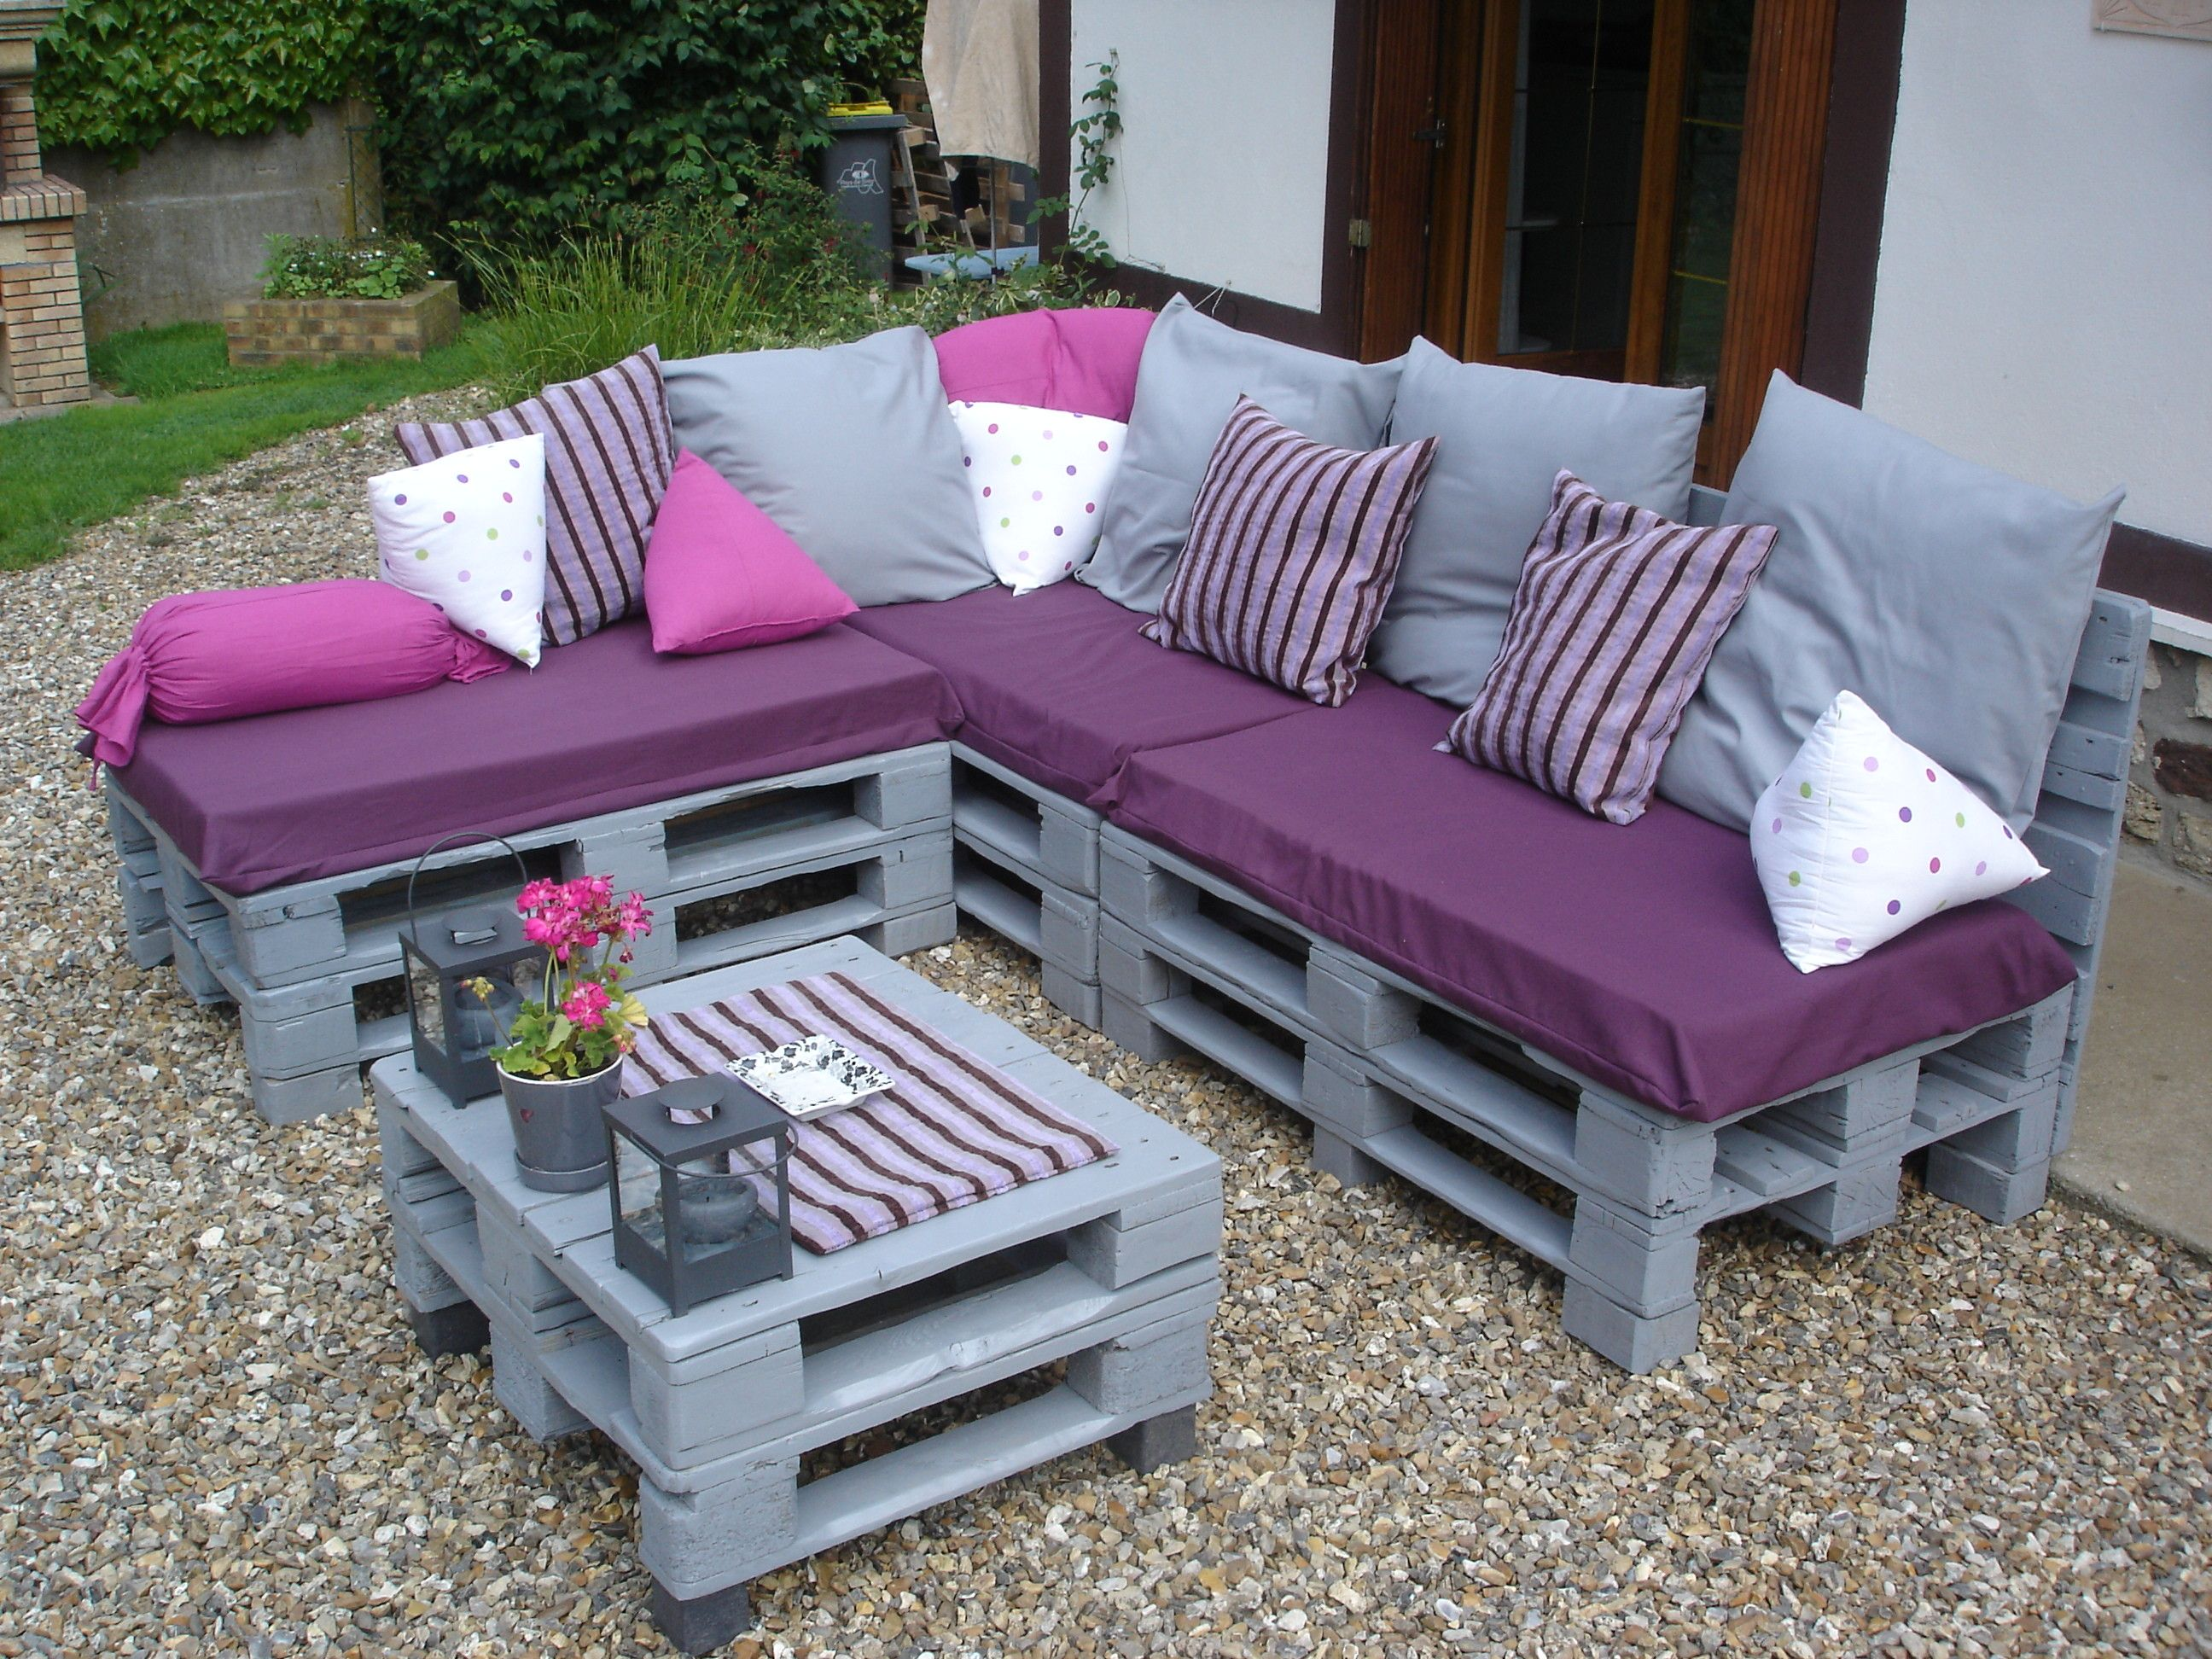 Pallets Garden Lounge Salon De Jardin En Palettes Europe 1001 Pallets Pallet Garden Furniture Outdoor Furniture Plans Pallet Furniture Outdoor